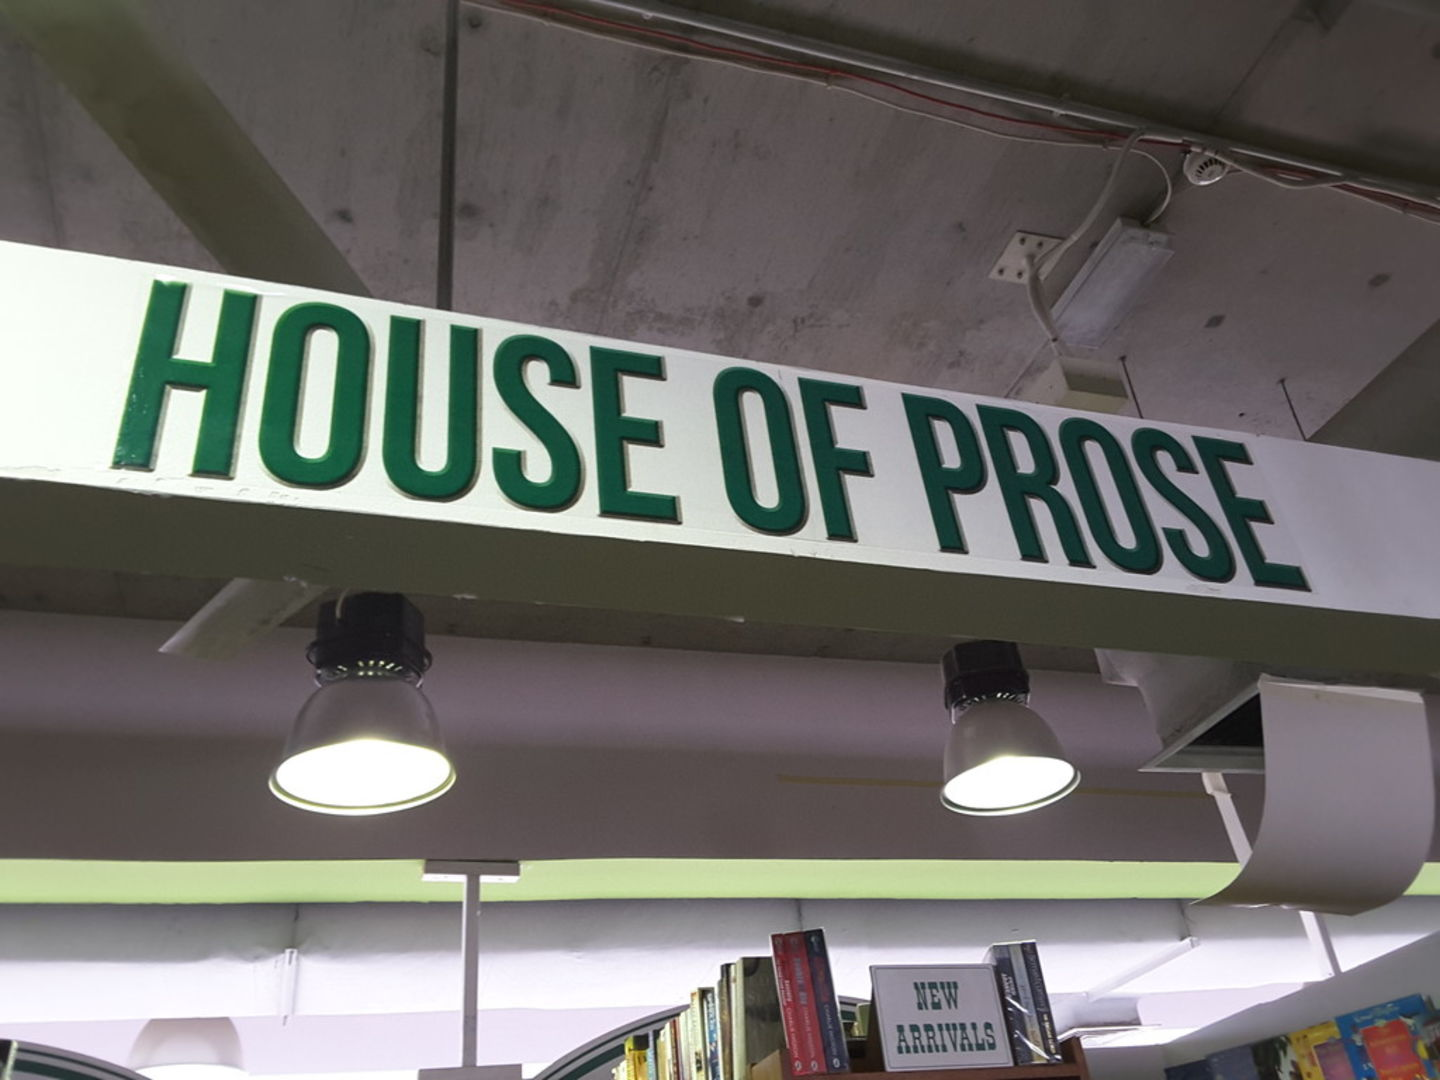 Walif-business-house-of-prose-1